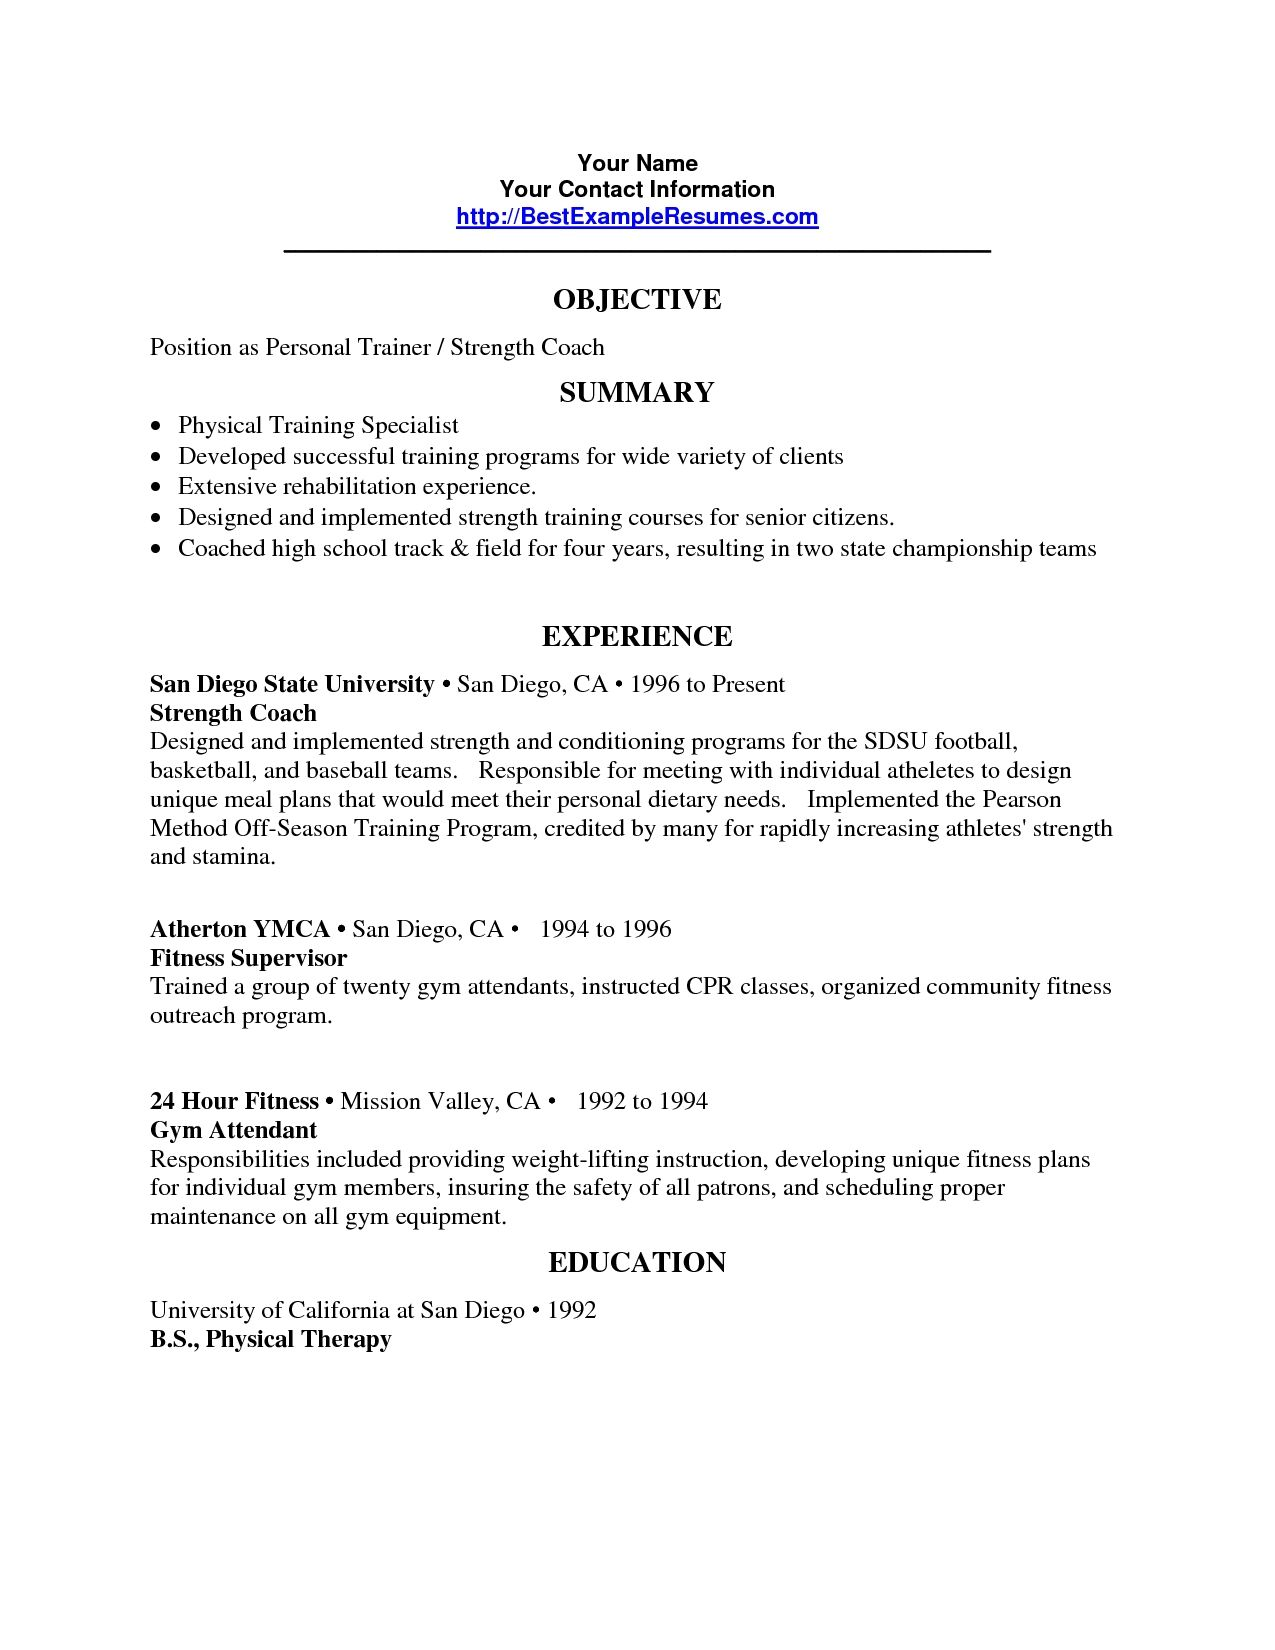 Personal Trainer Resume Objective Trainer Resume Sample Gallery Photos